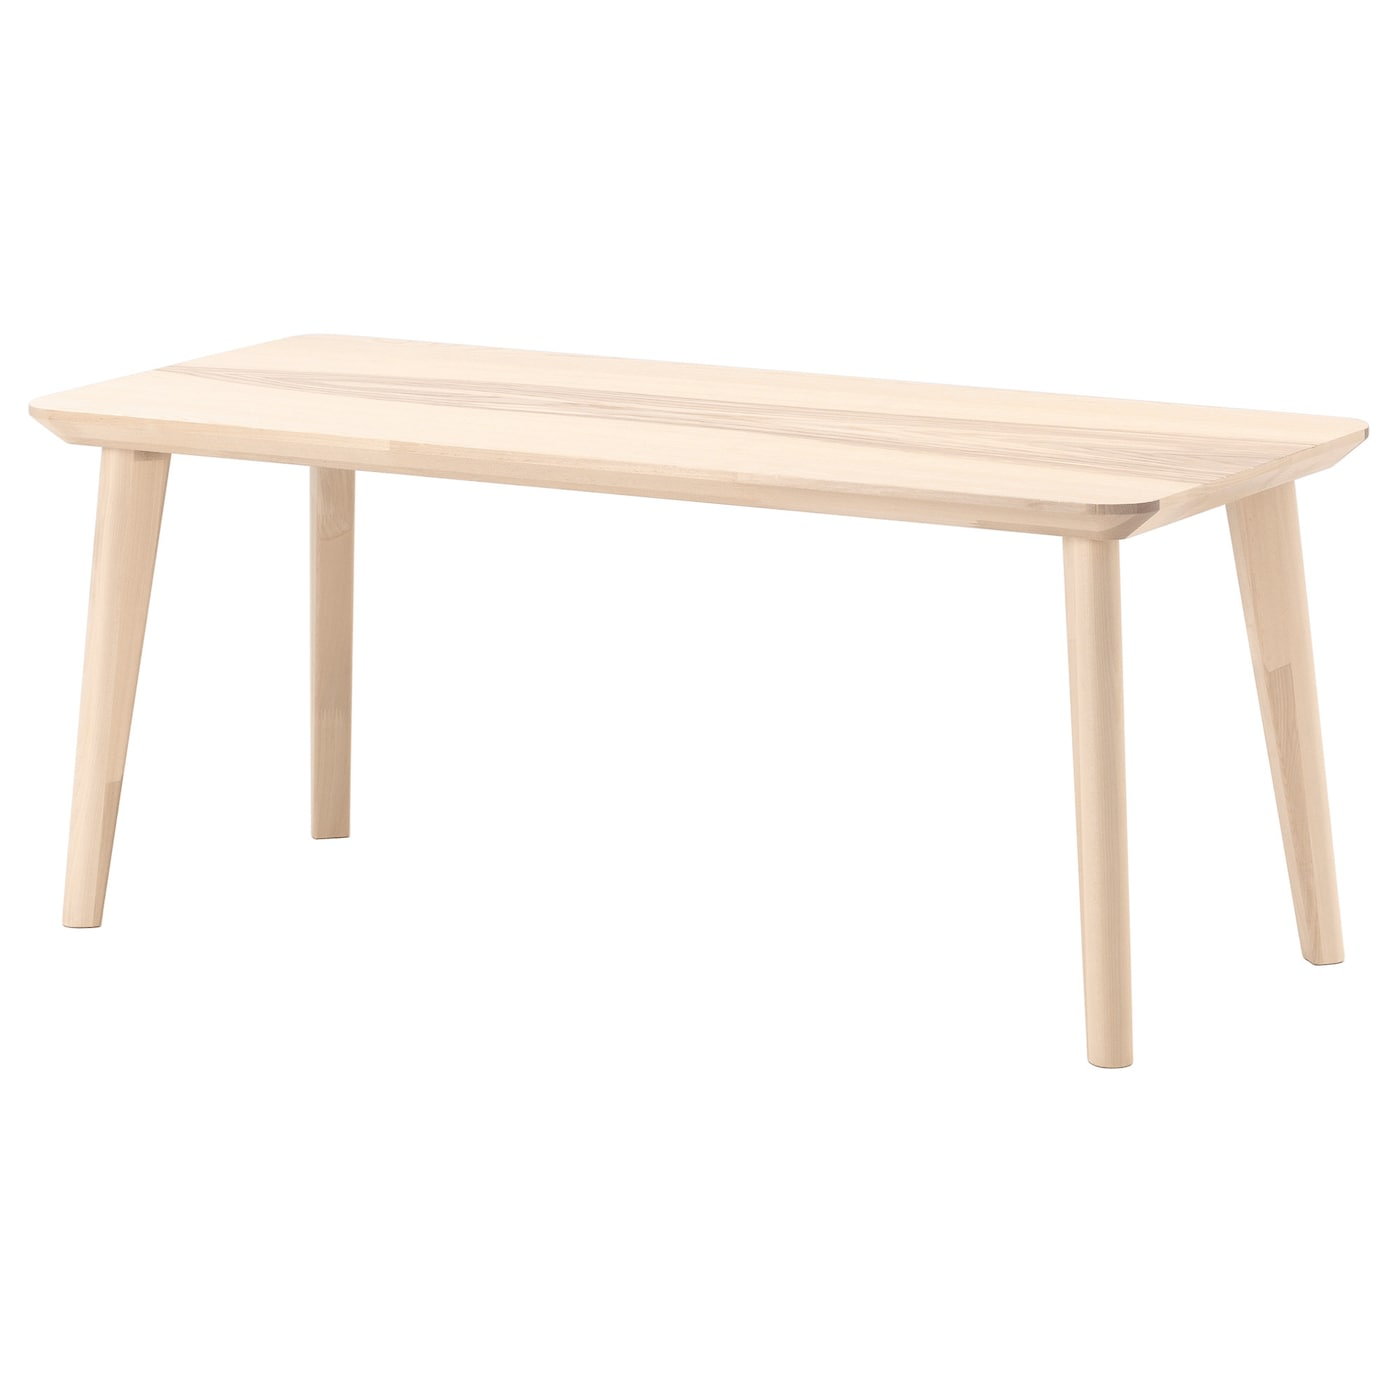 Lisabo coffee table ash veneer 118x50 cm ikea - Table basse plateau relevable ikea ...